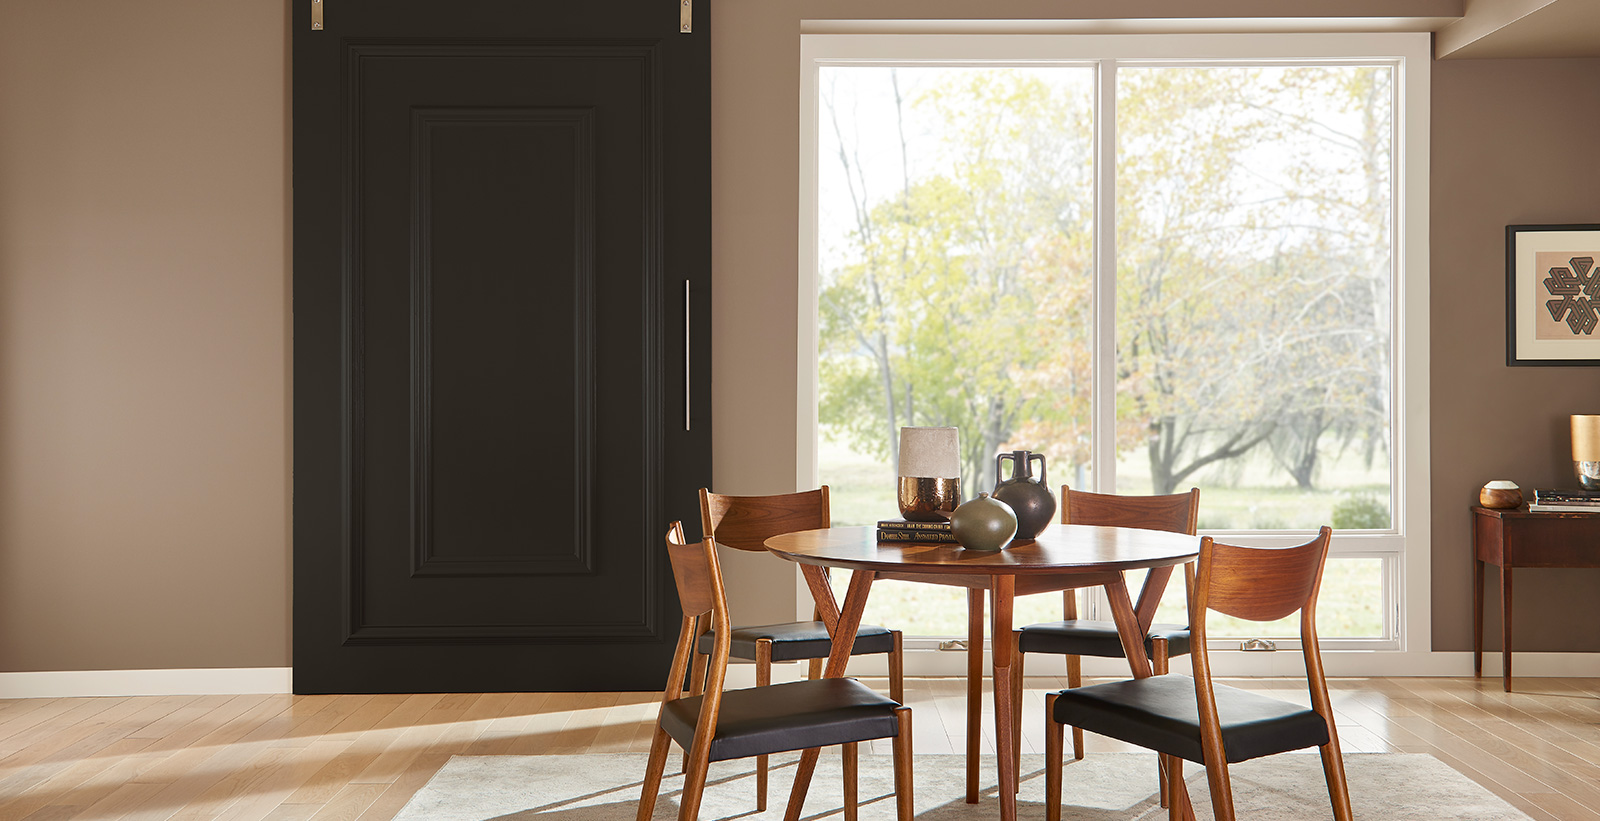 Open dining space in front of sliding doors, walls painted in warm tan color with white trim, sliding barn door in espresso black.